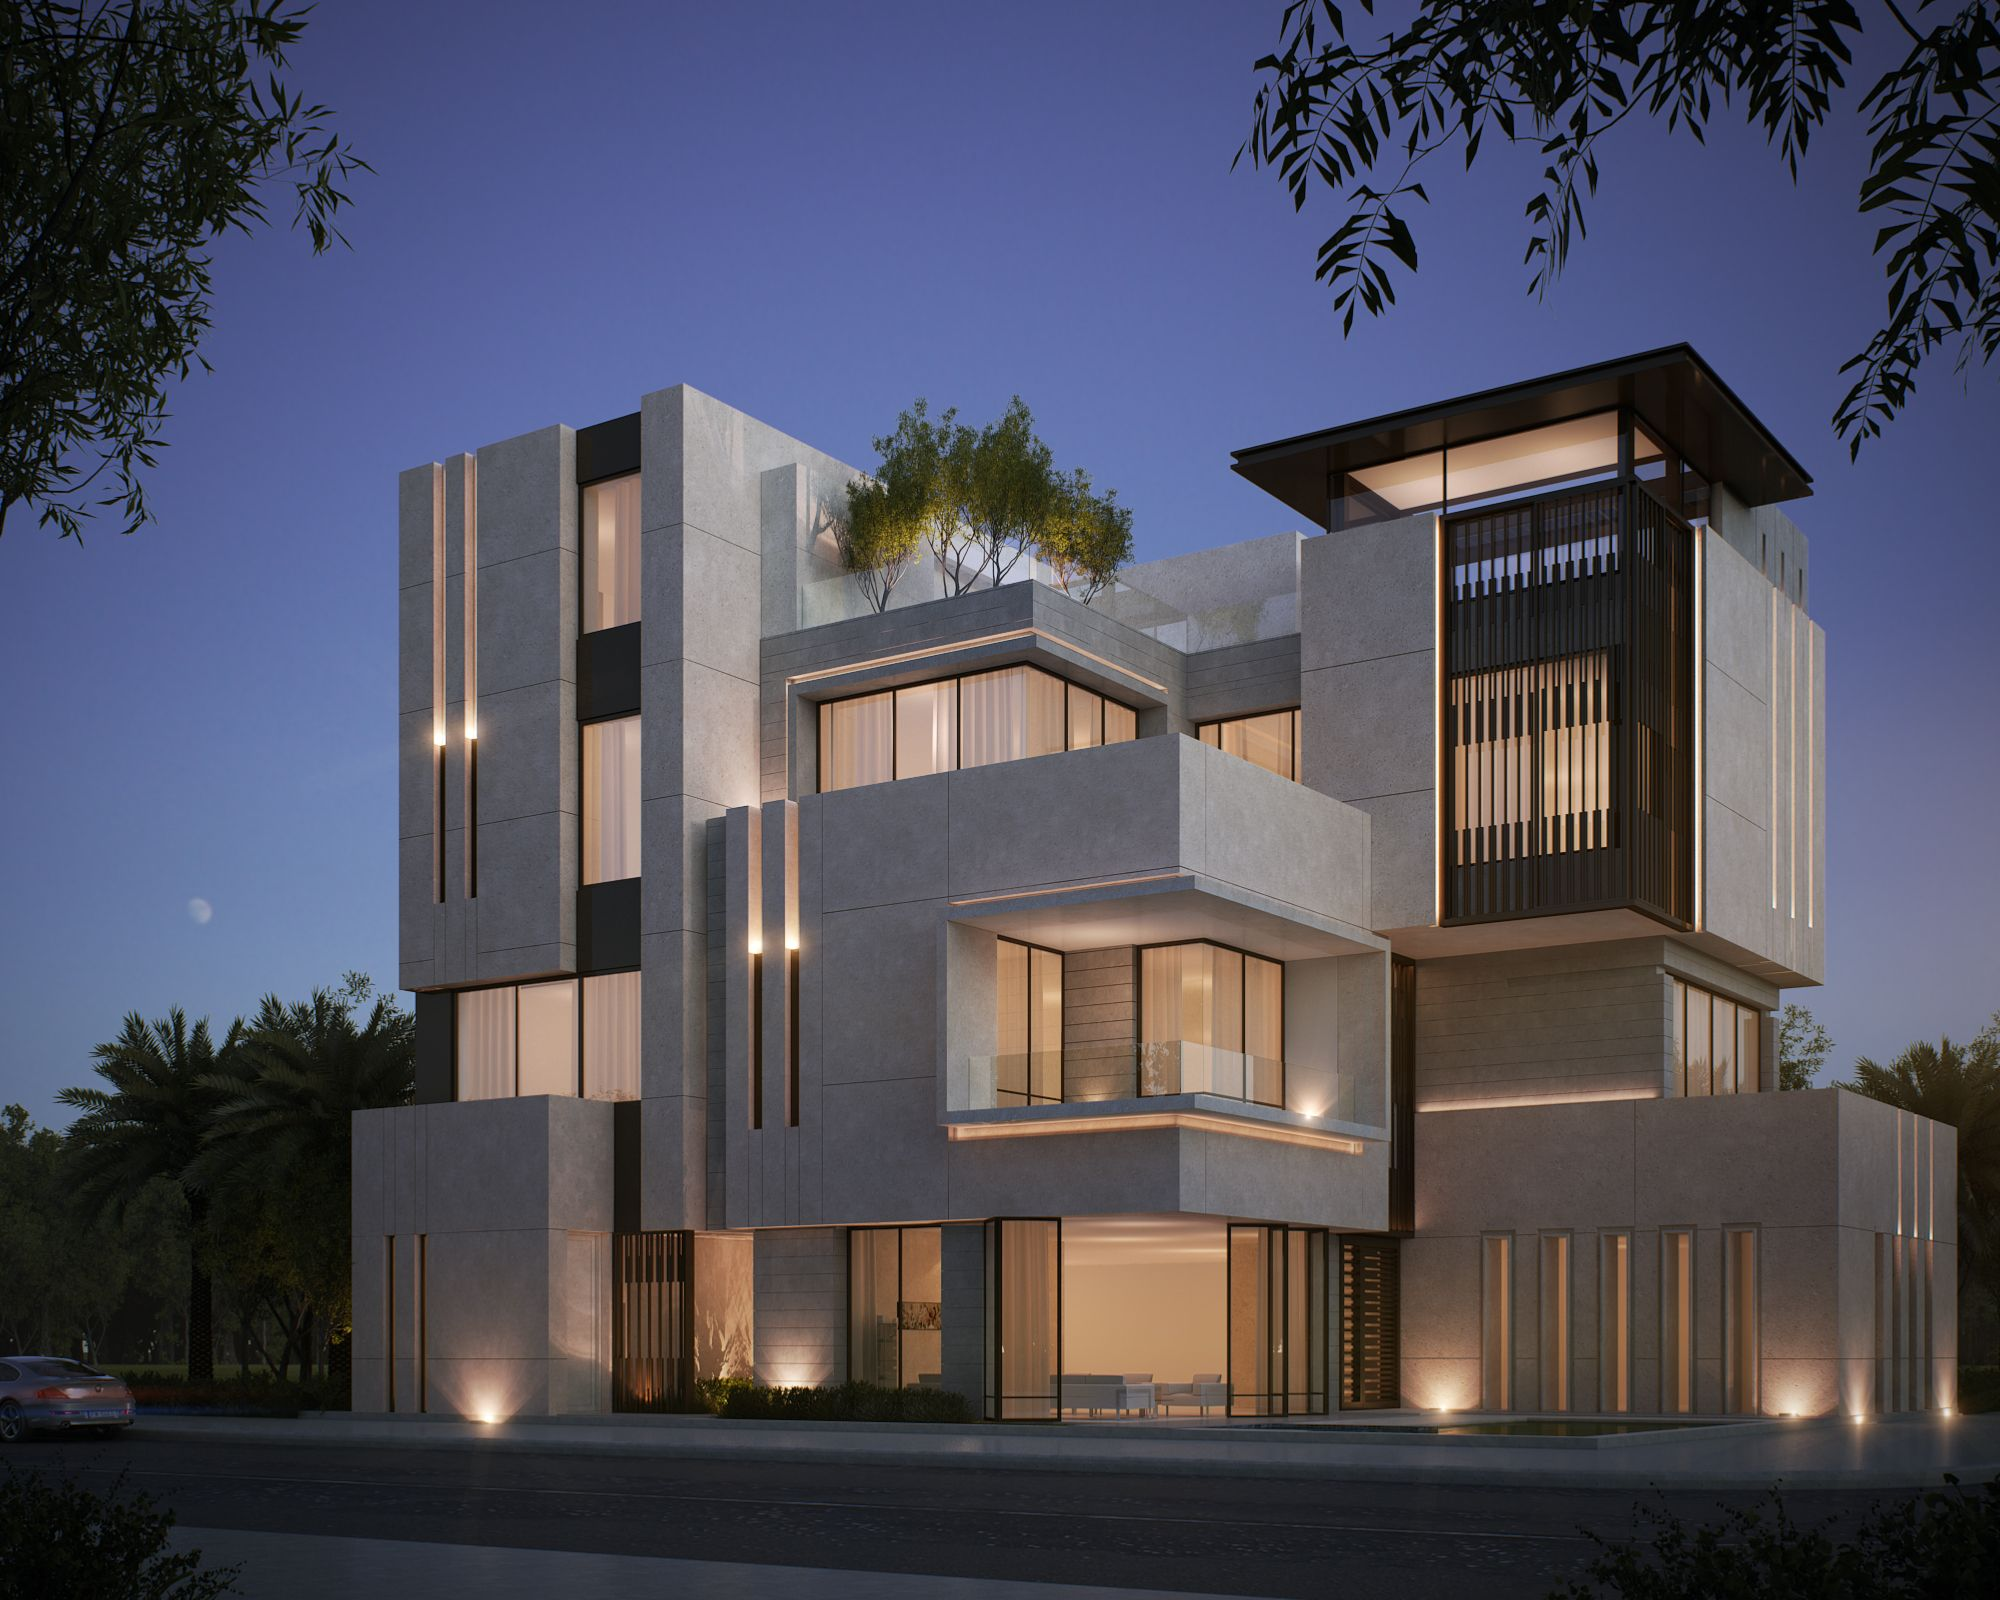 Private villa 500 m kuwait sarah sadeq architects sarah for Villa moderne design